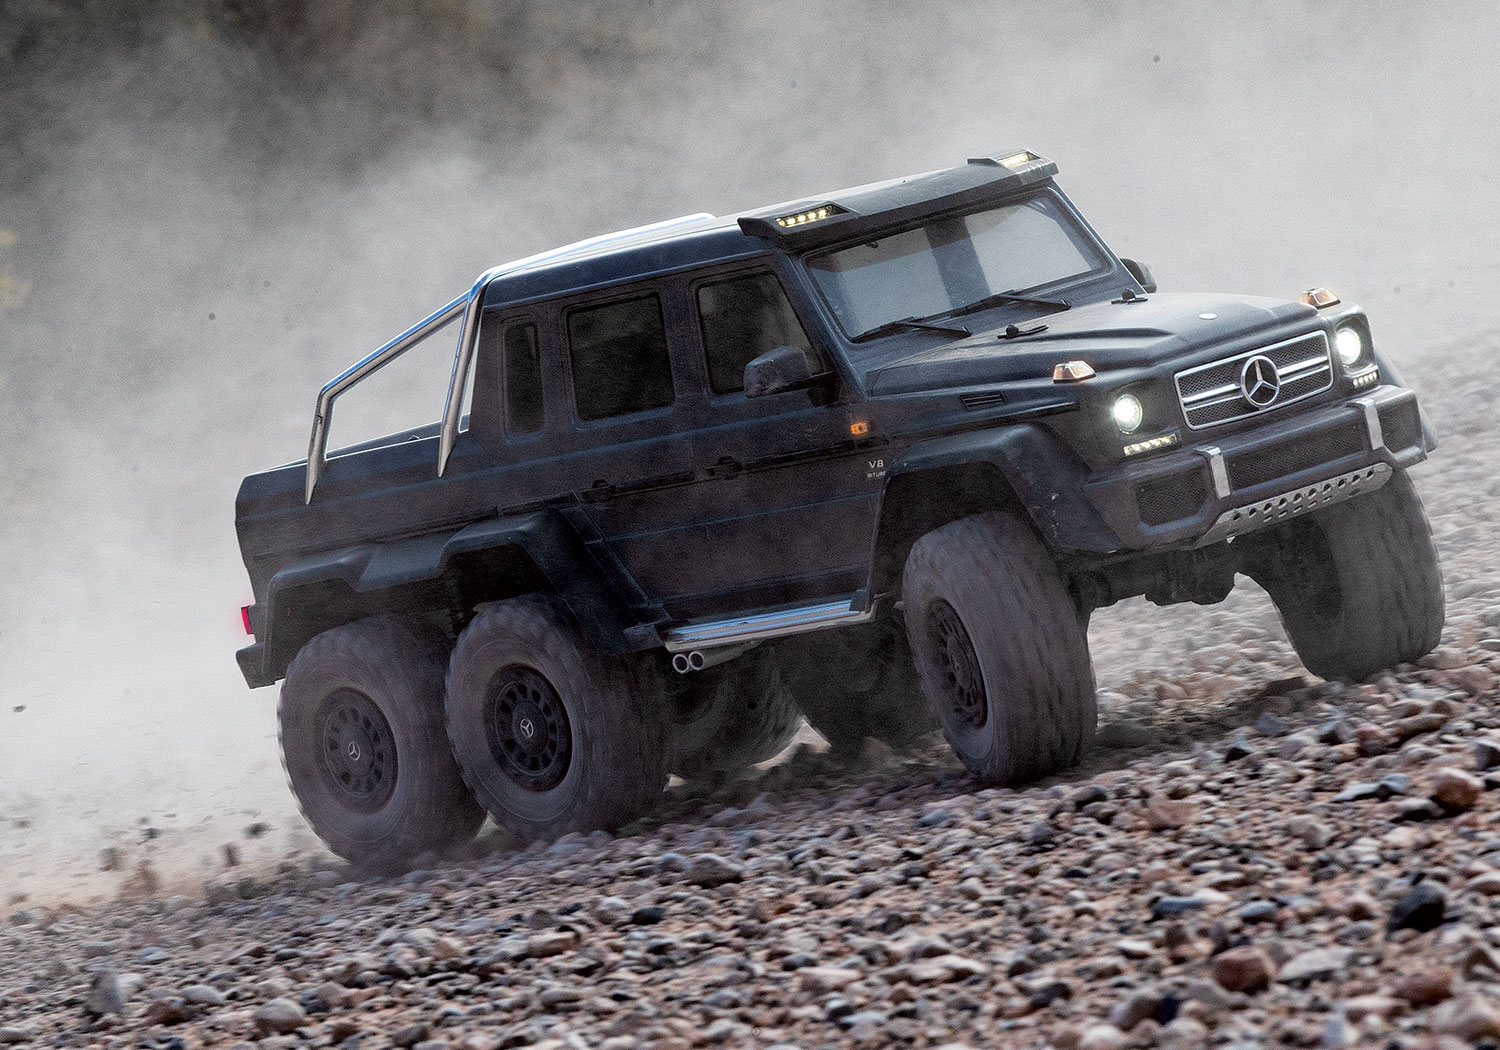 TRX-4 with Mercedes-Benz G 63 AMG 6x6